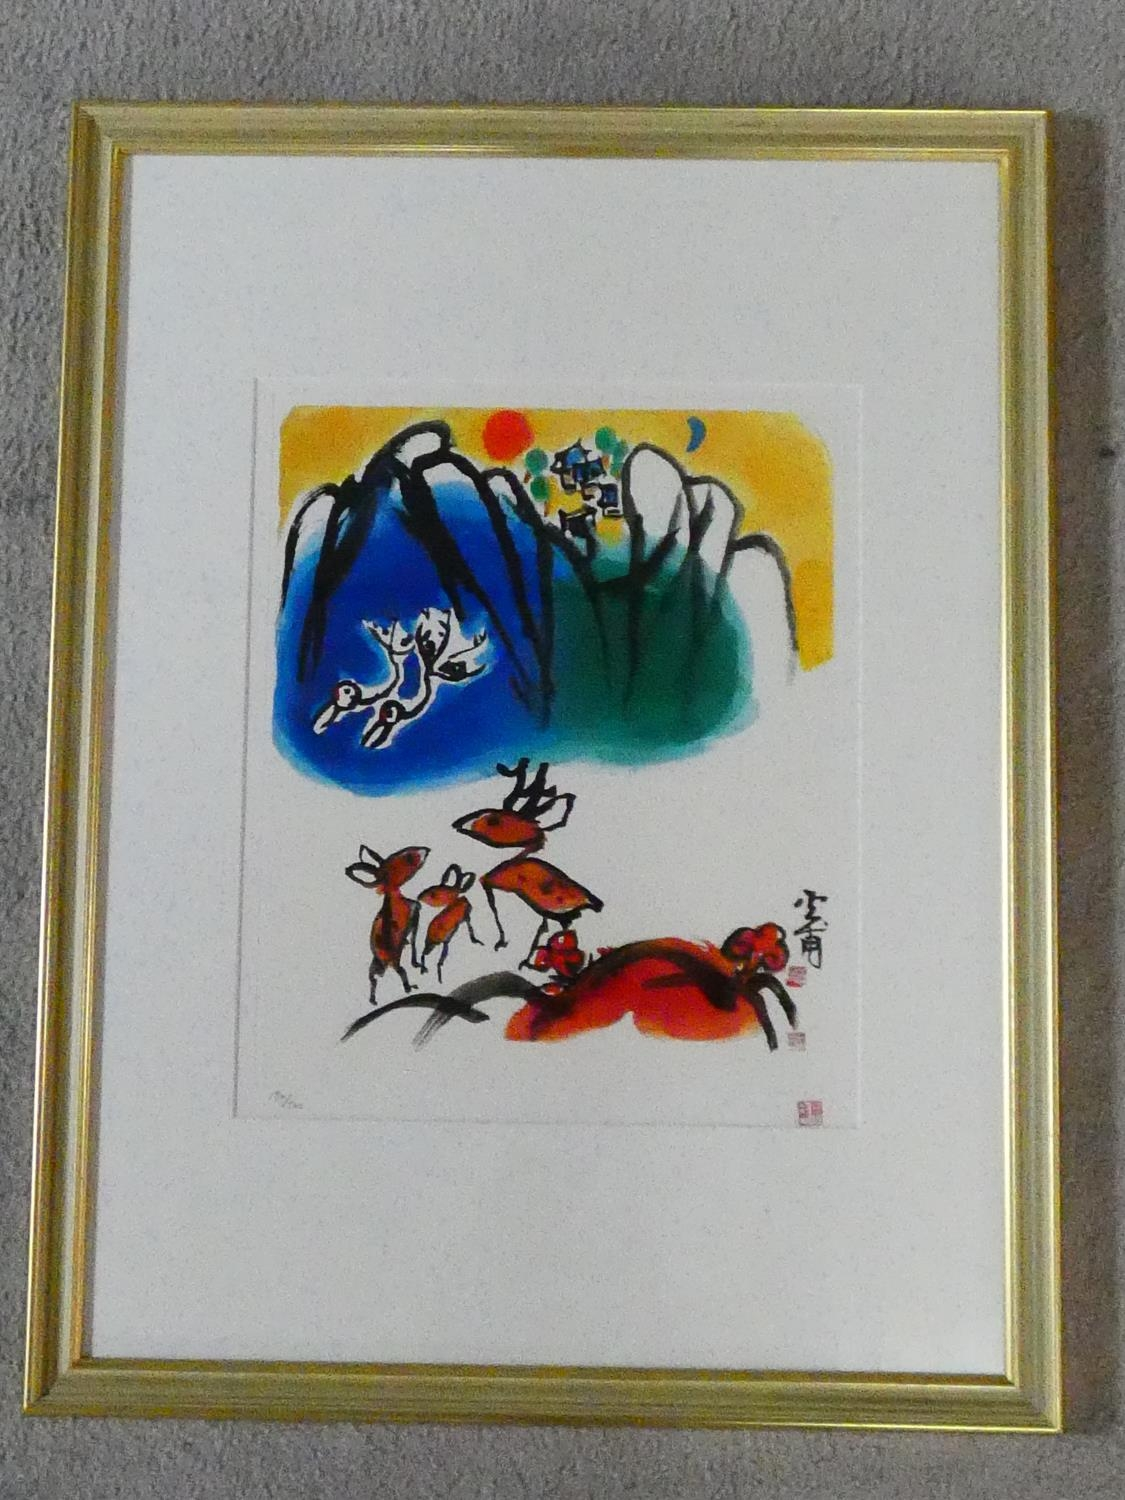 A framed and glazed limited edition signed print by Korean Artist (Kim Ki Chang 1914 - 2001), - Image 2 of 5